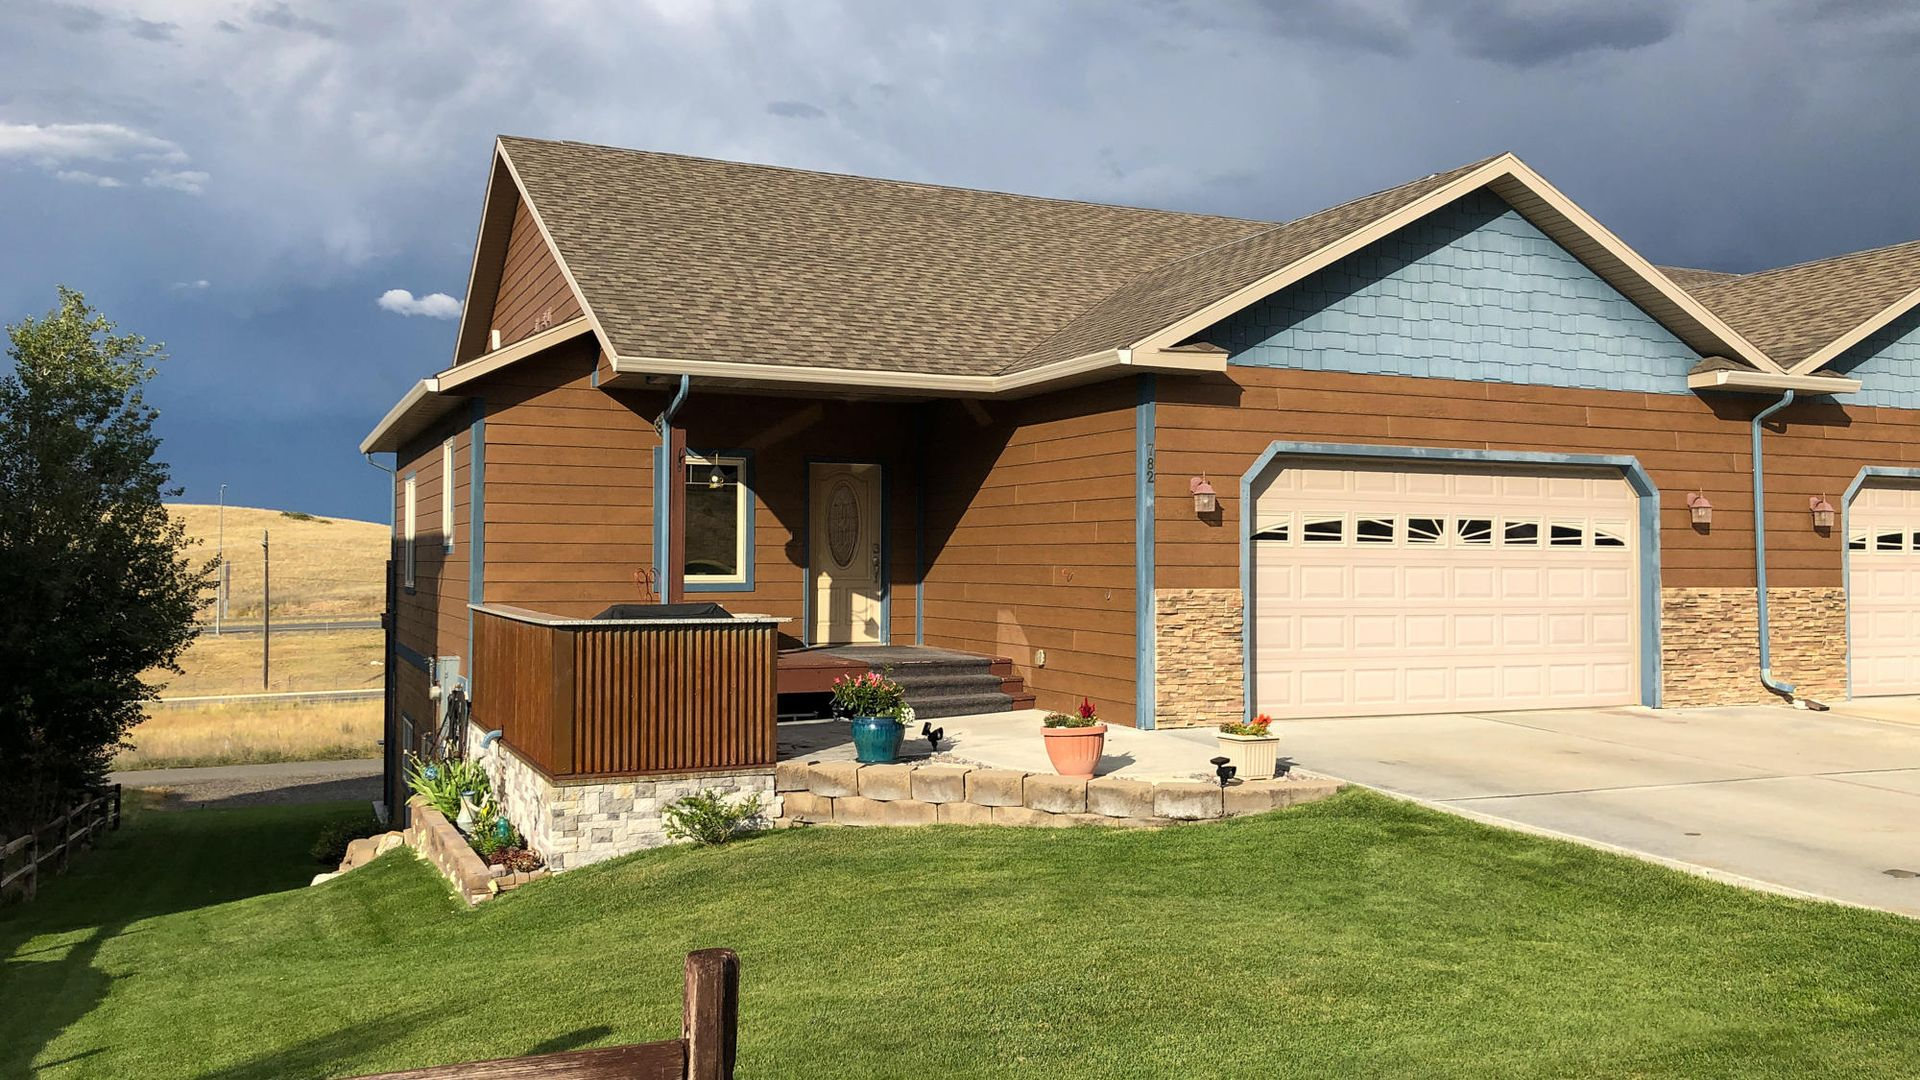 Mobile Homes For Sale Under $2000 Near Me